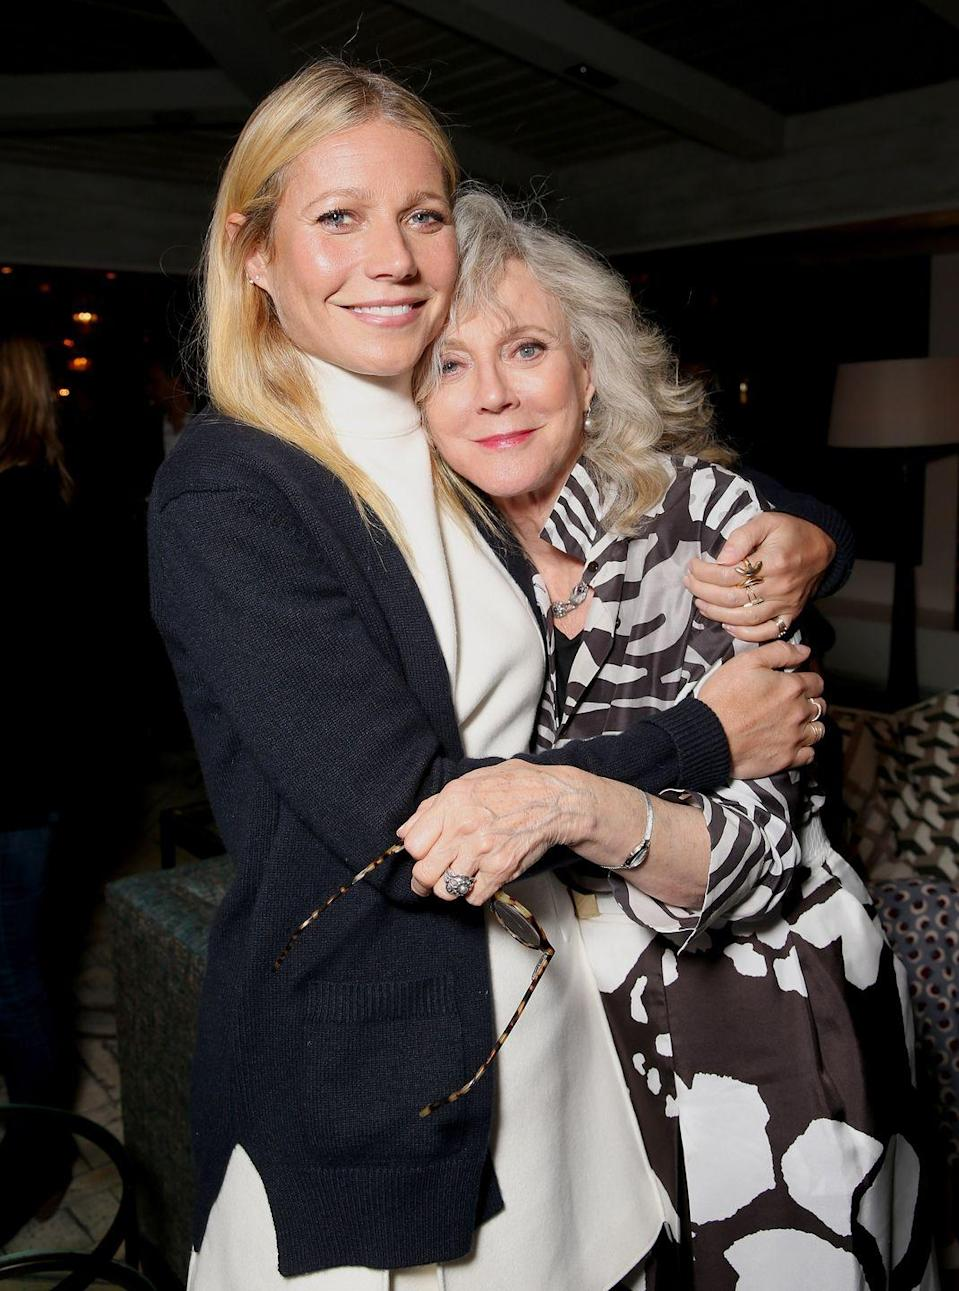 "<p>""<a href=""https://www.eonline.com/news/655199/mother-s-day-2015-gwyneth-paltrow-reveals-what-mom-blythe-danner-taught-her-watch-the-touching-video"" rel=""nofollow noopener"" target=""_blank"" data-ylk=""slk:She's taught"" class=""link rapid-noclick-resp"">She's taught</a> me a lot about being a woman who isn't afraid to be creative and expressive and to channel that energy and power, which she does in such elegant and graceful ways.""</p>"